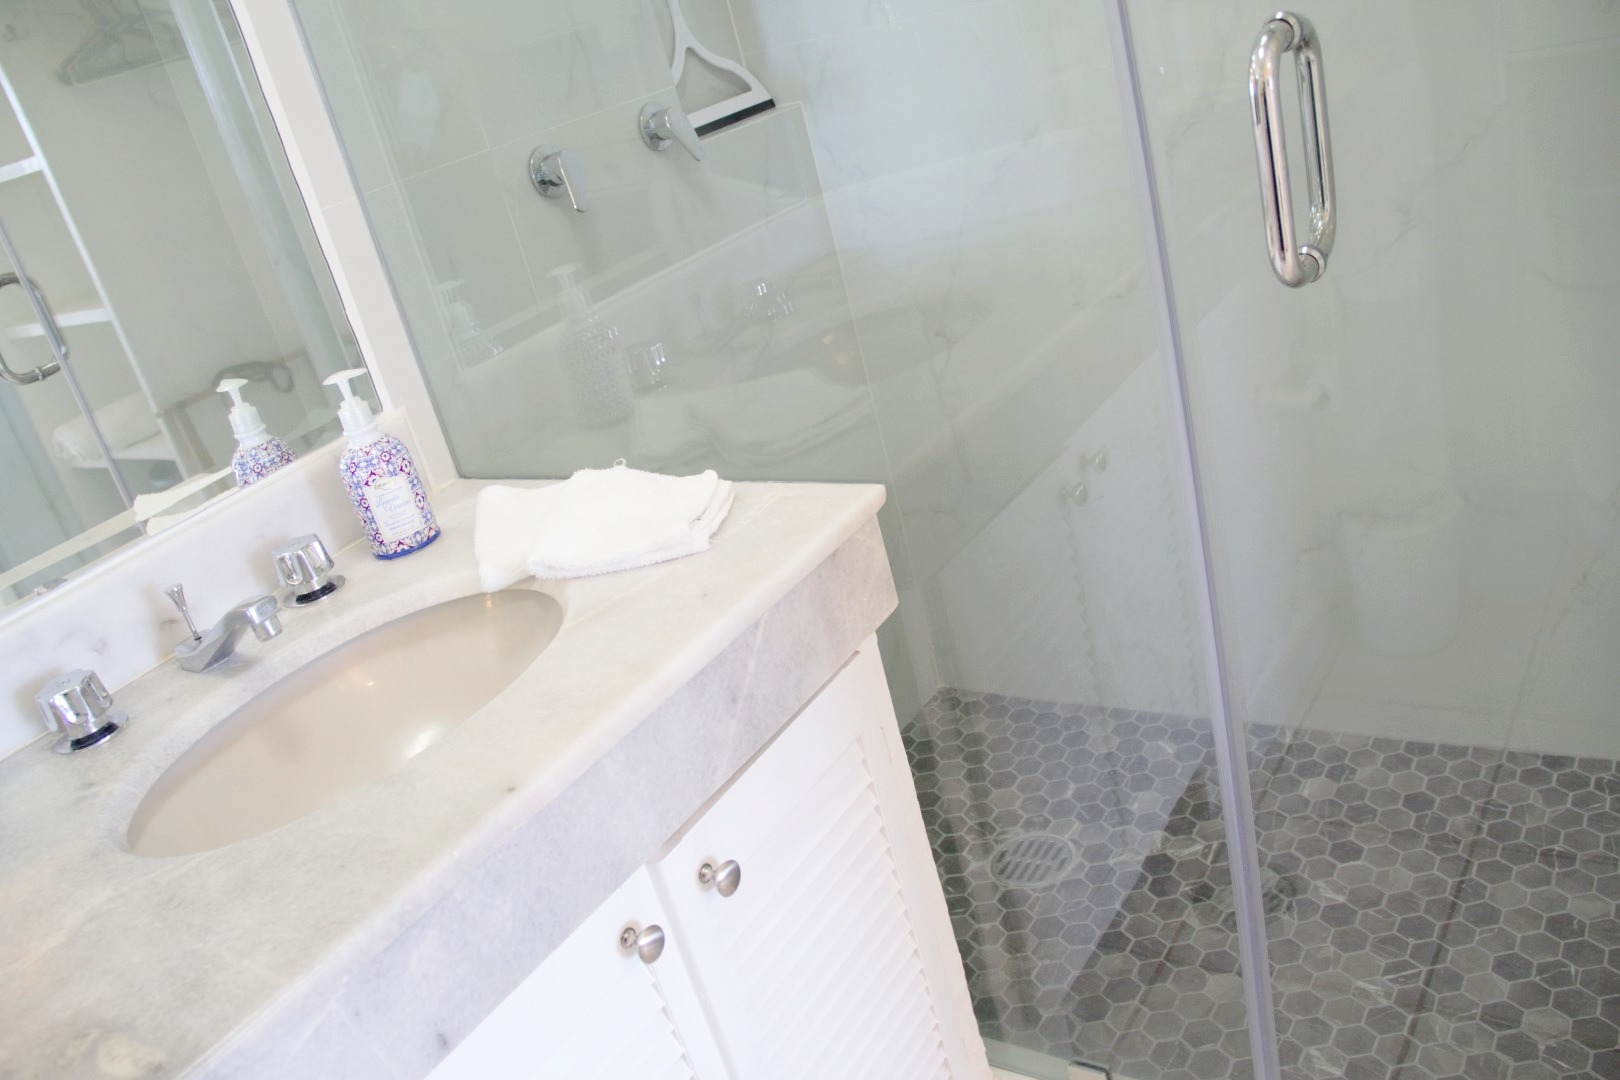 Beautiful, large walk-in tiled shower.